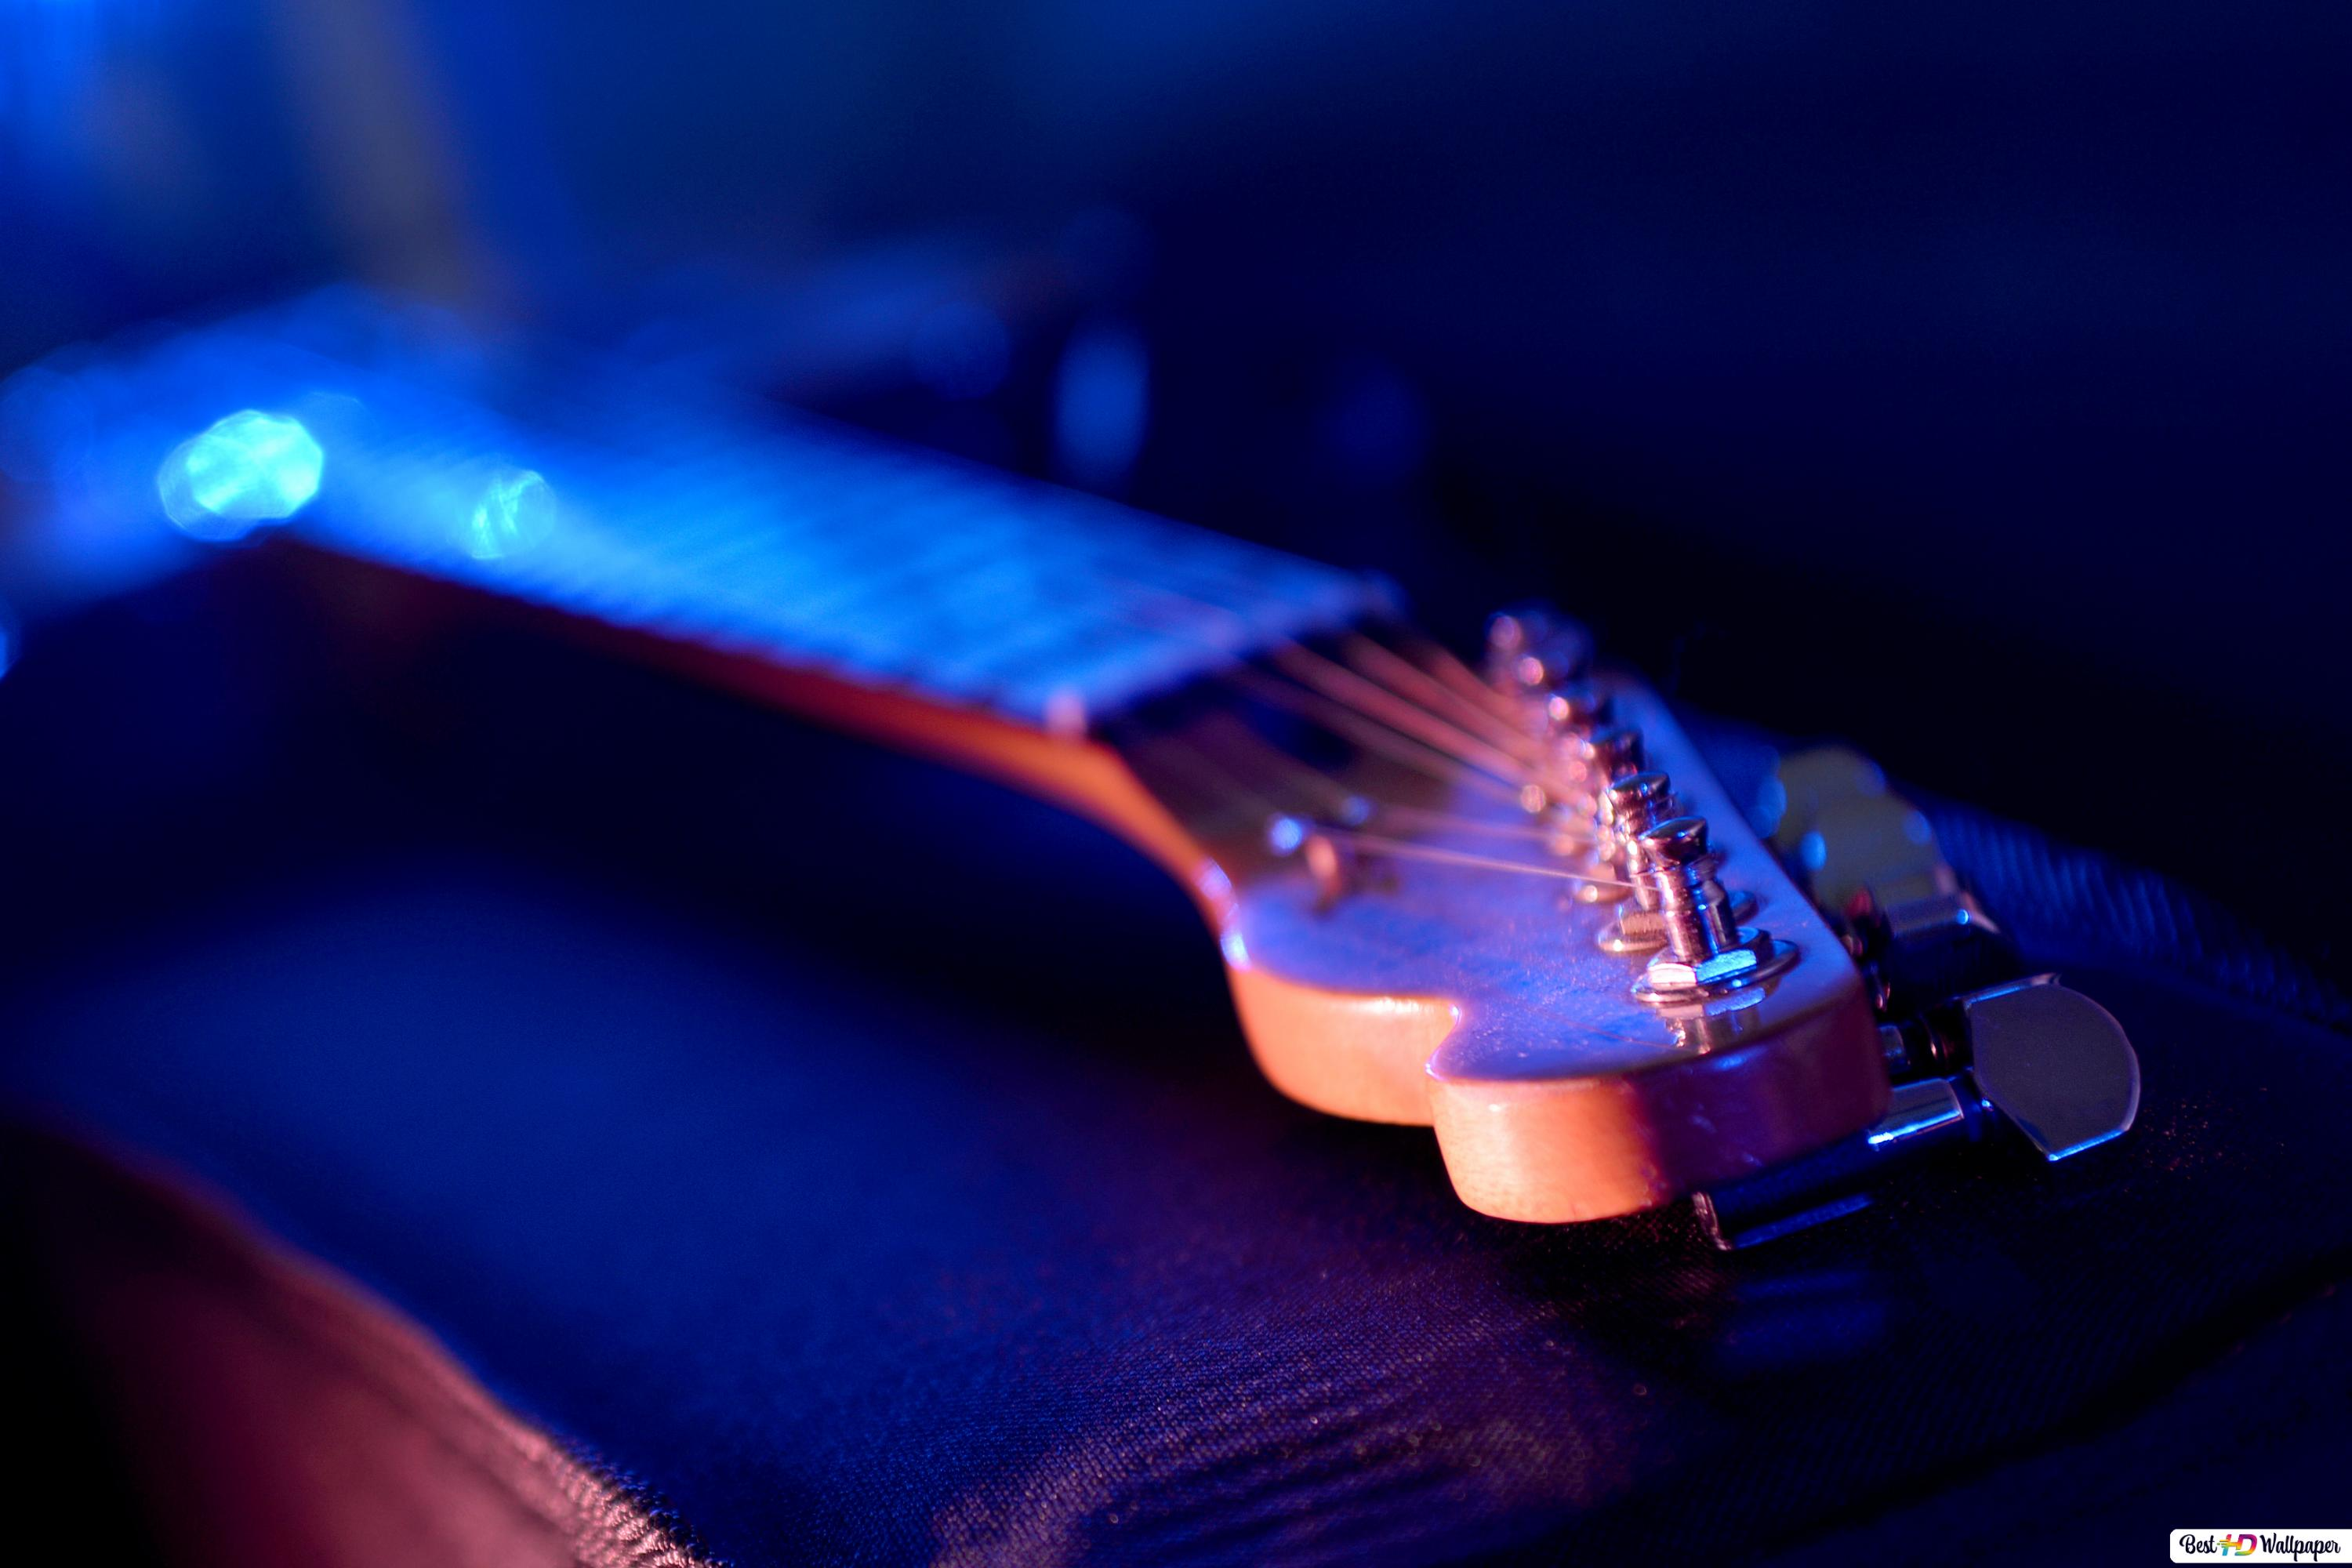 Electric Guitar On Stage Hd Wallpaper Download